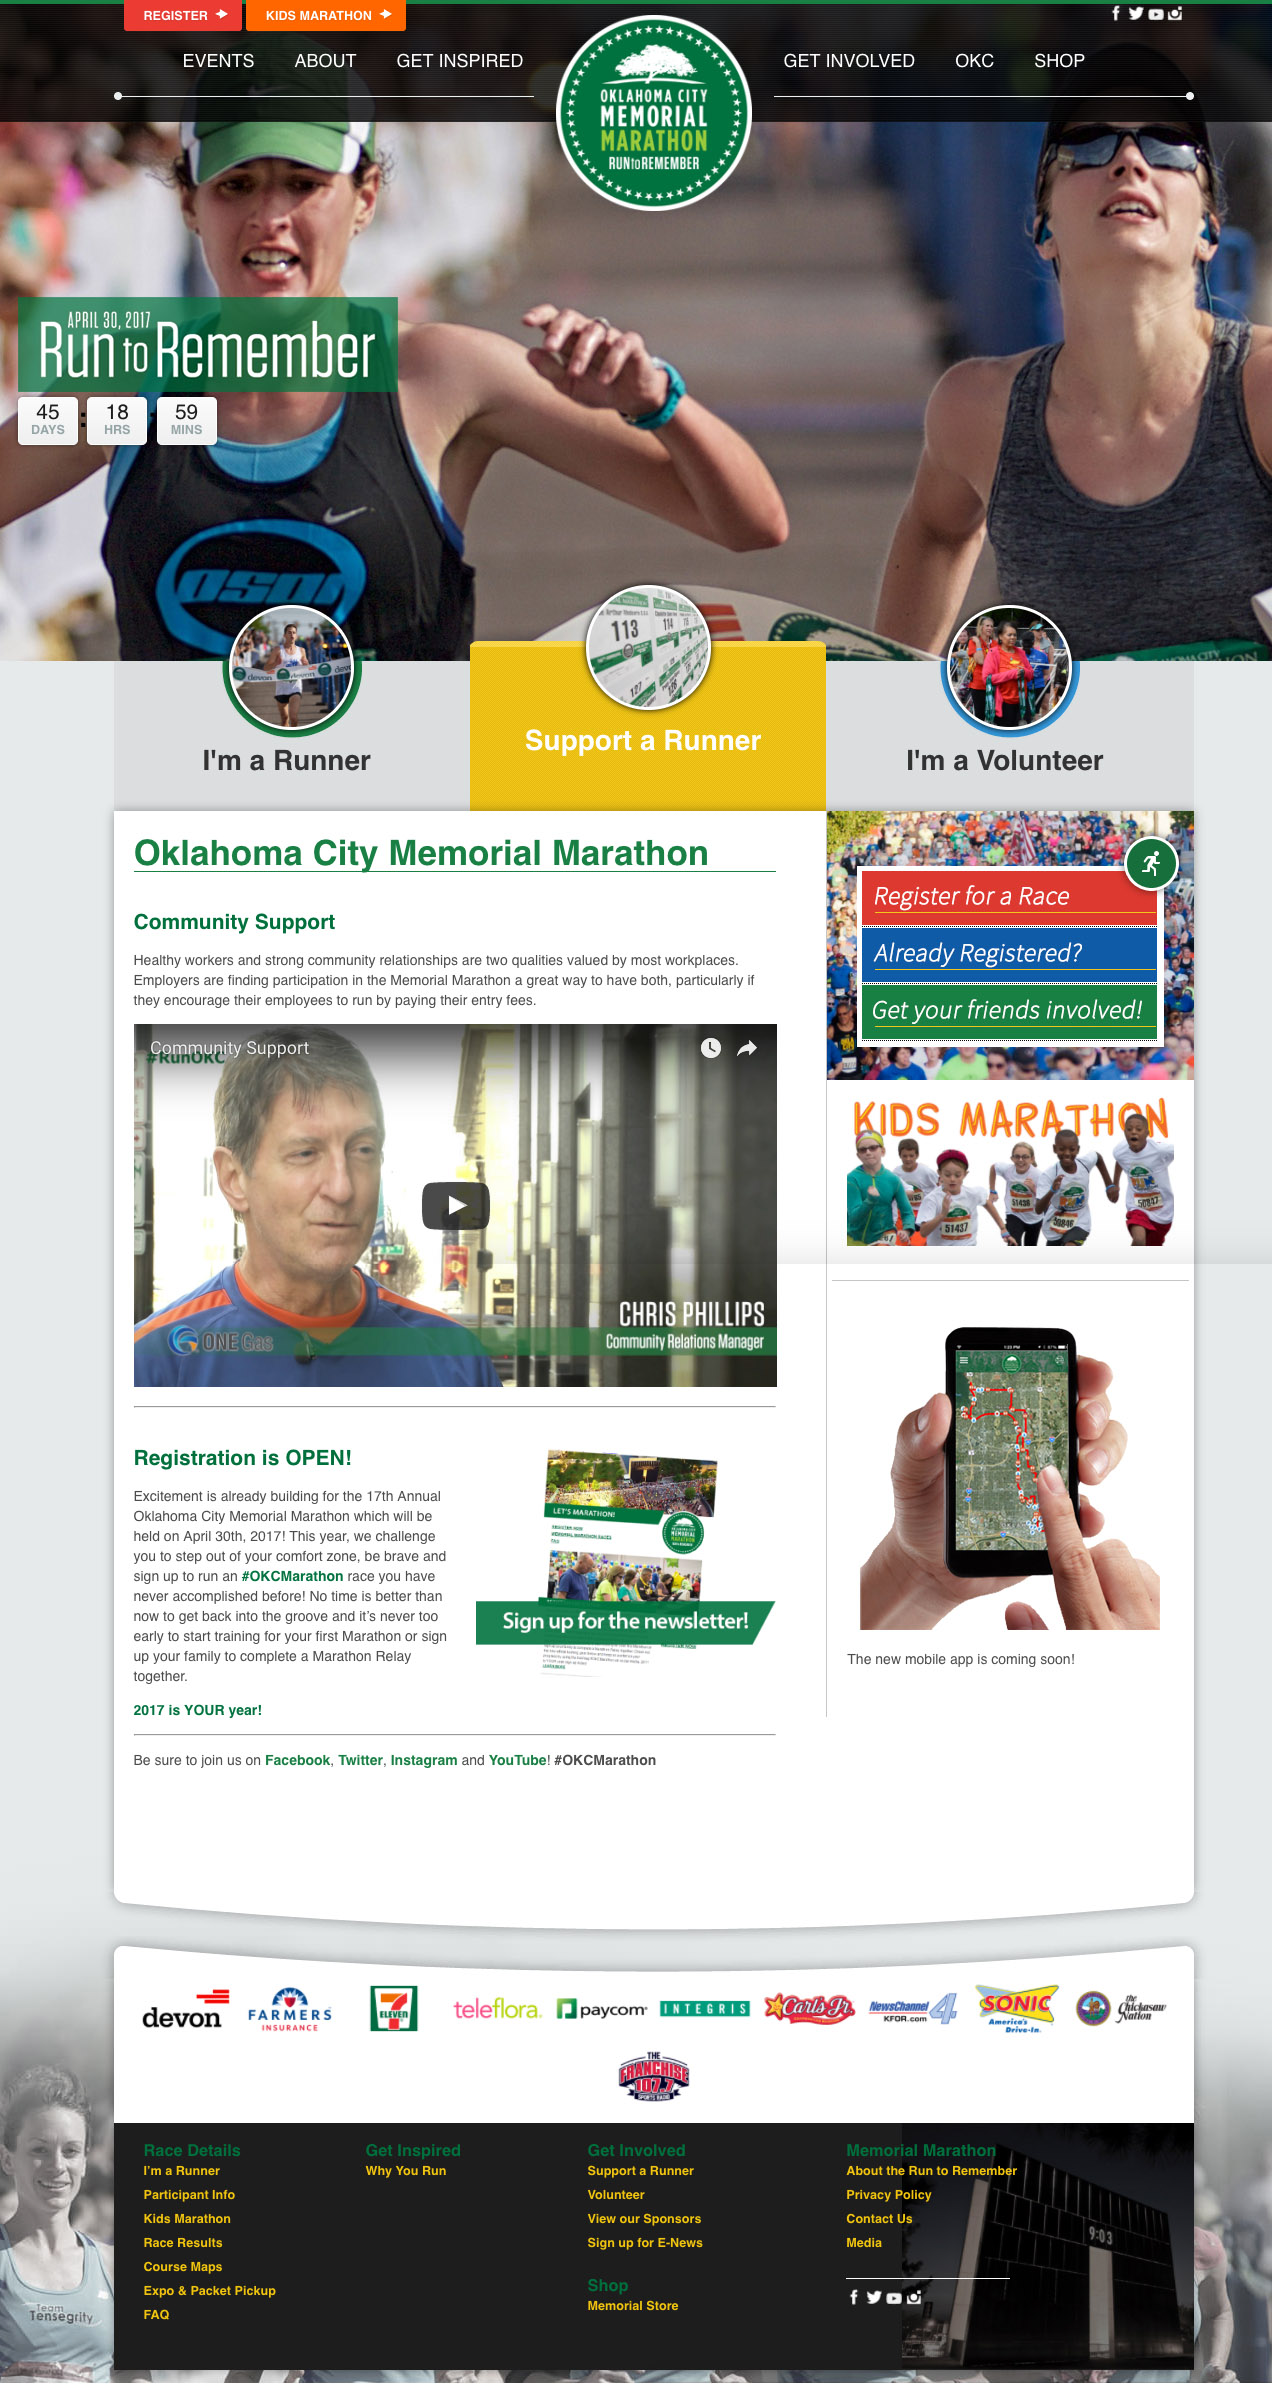 screenshot of the homepage for the oklahoma city memorial marathon